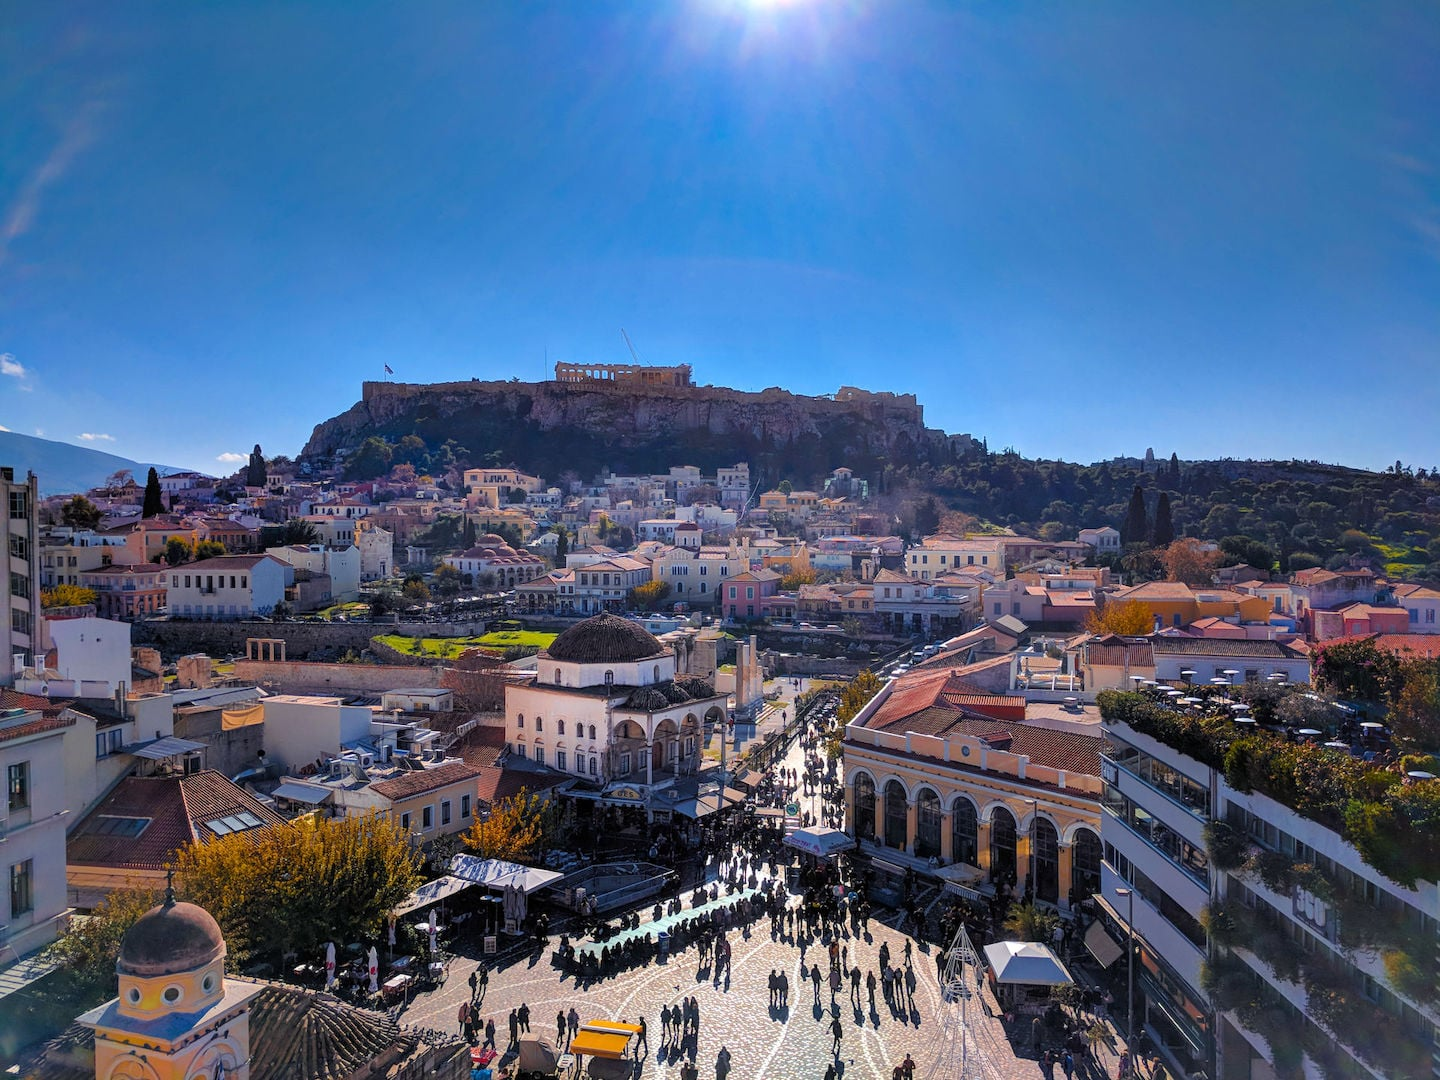 Panoramic view of the Monastiraki square, Plaka, and the Acropolis in Athens, Greece.